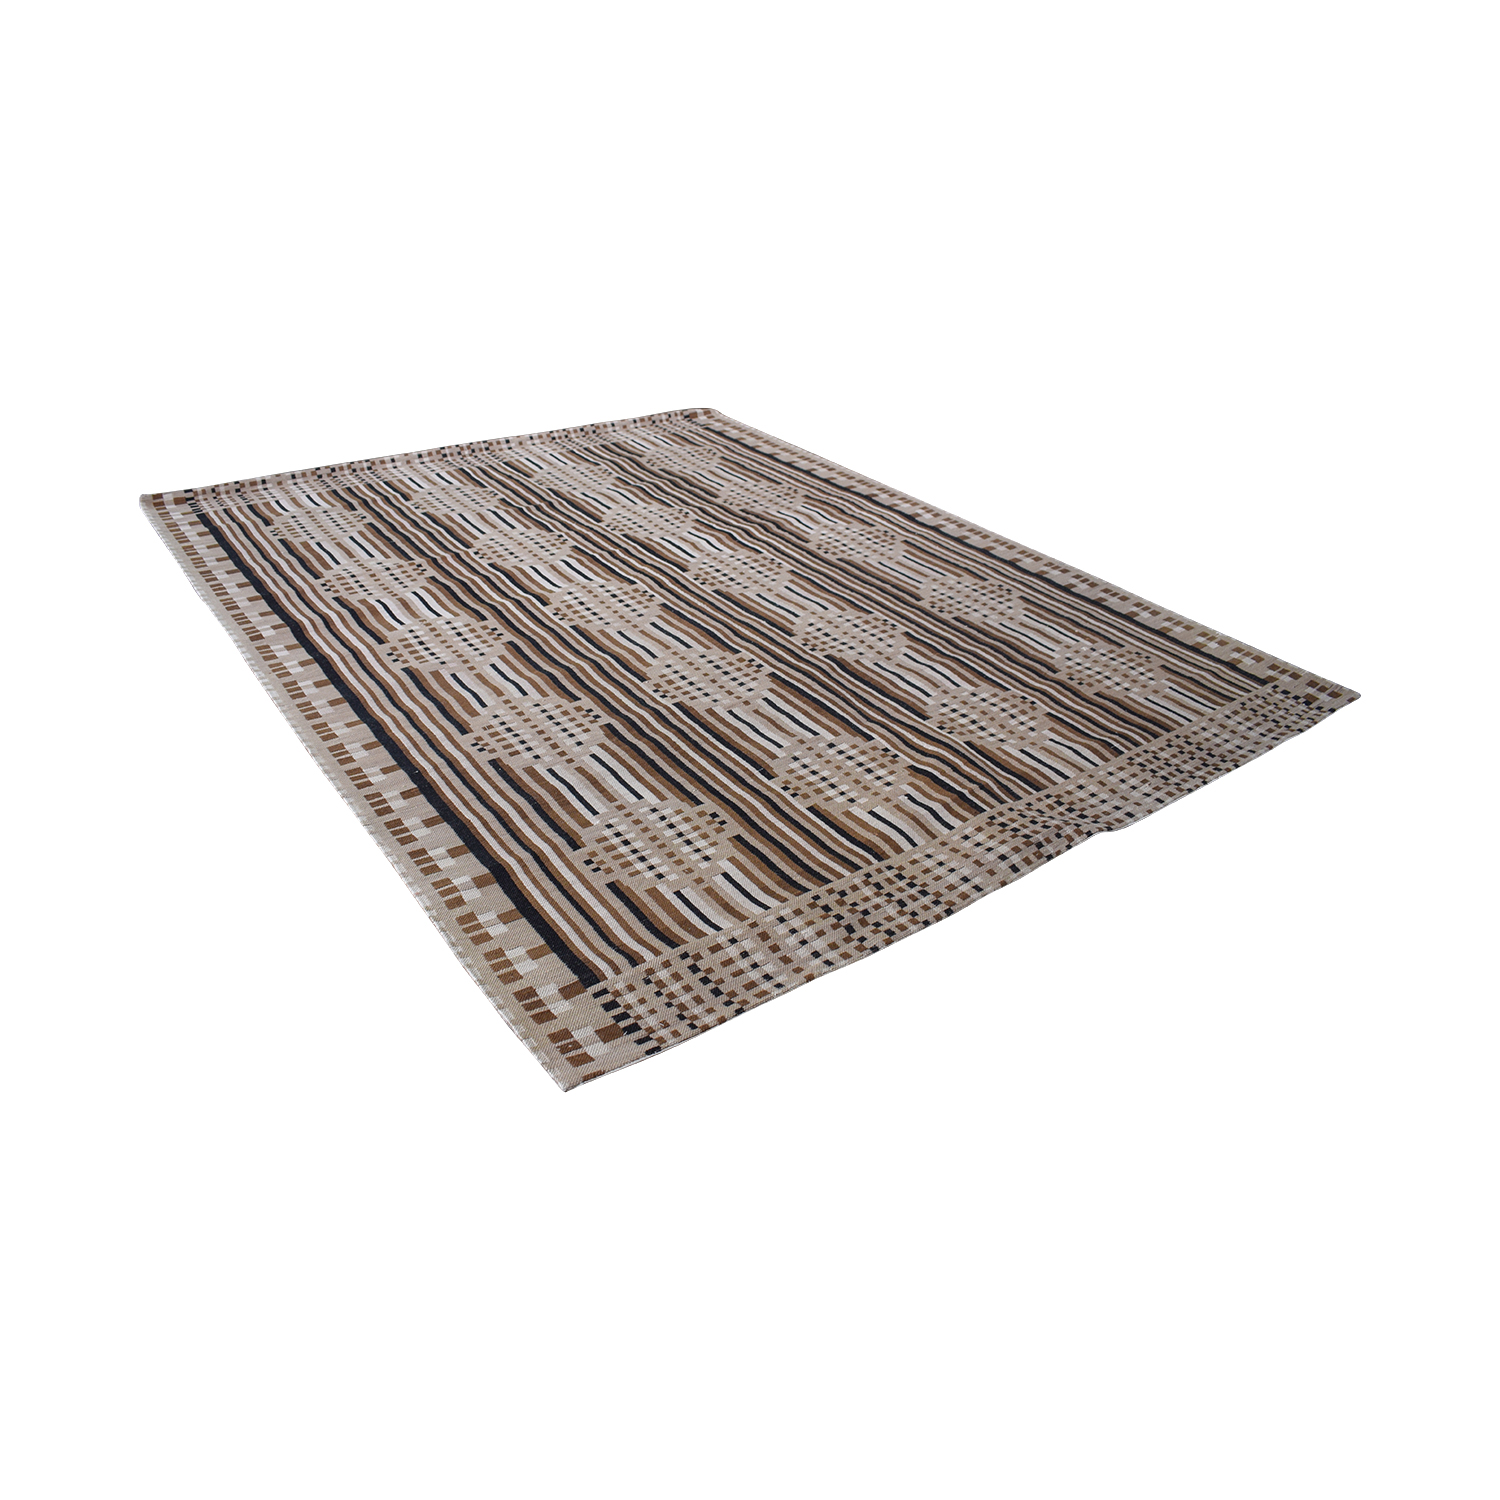 Obeetee Obeetee Chocolate and Tan Flat Weave Rug price